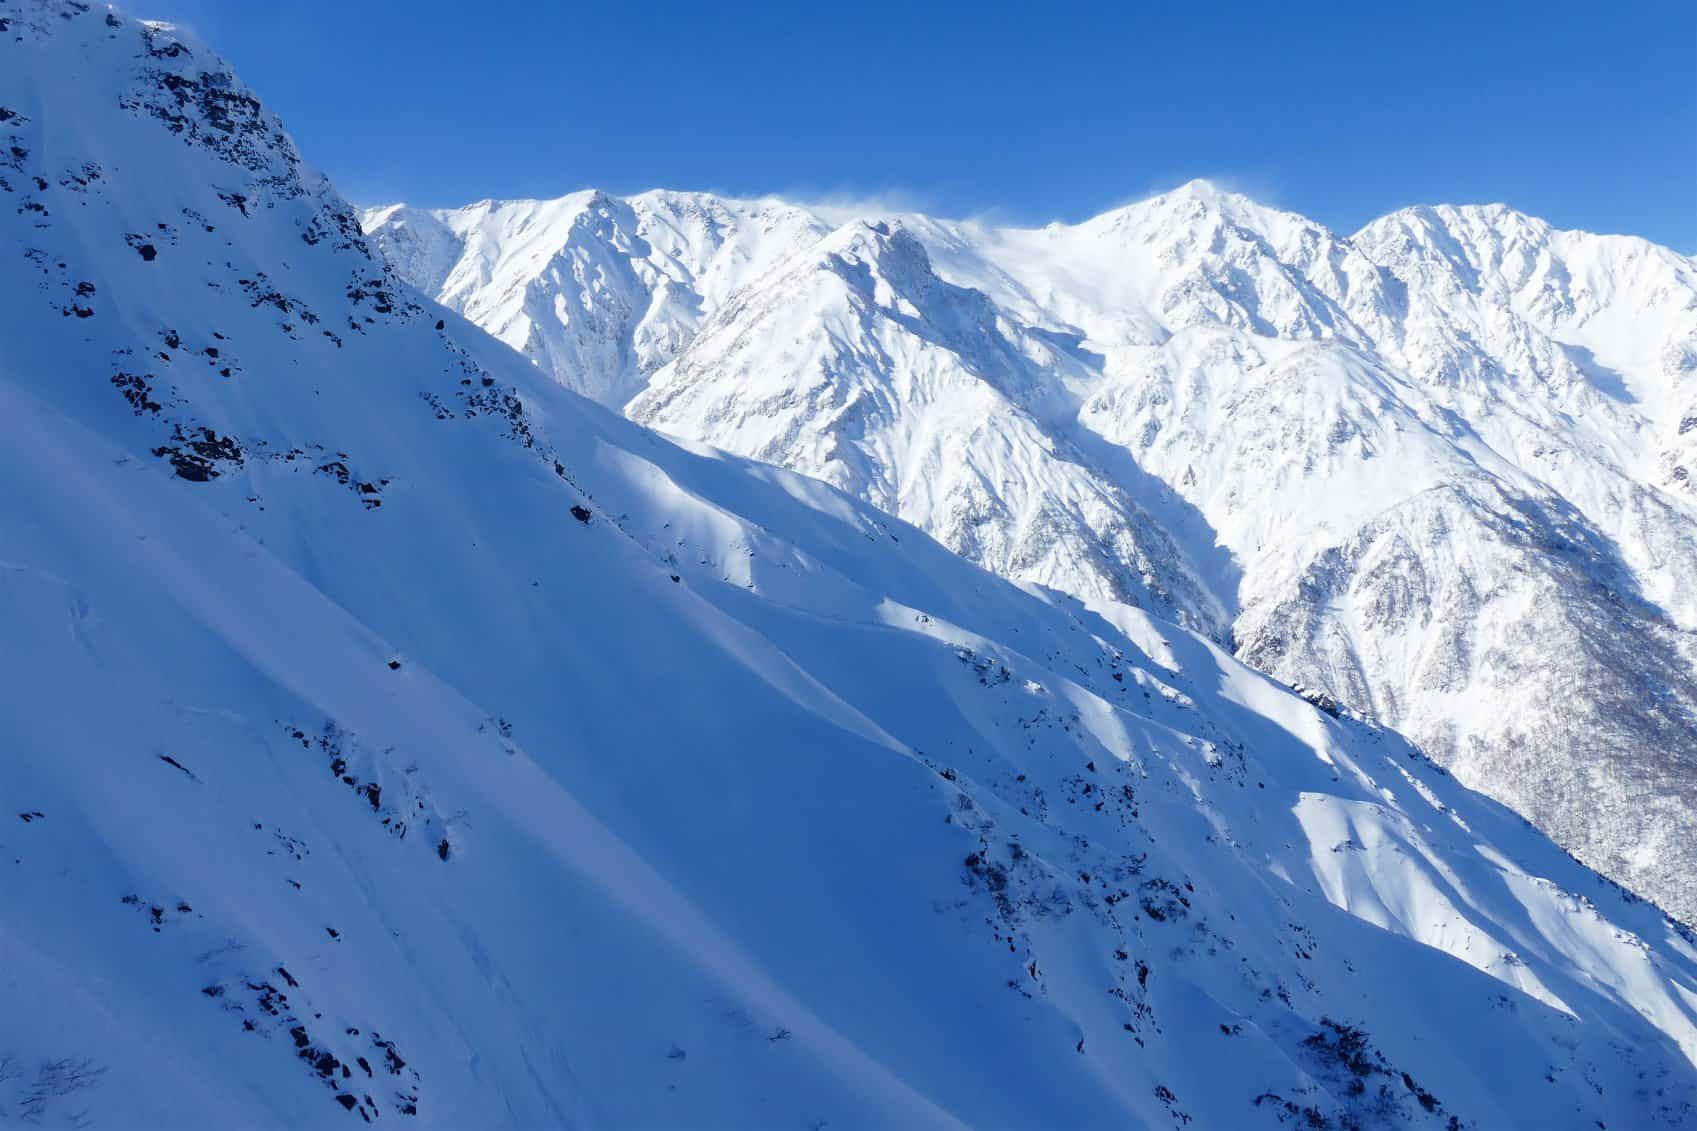 Spring Skiing in Hakuba with Steve Lee's Hakuba Powder Tours | Mountainwatch